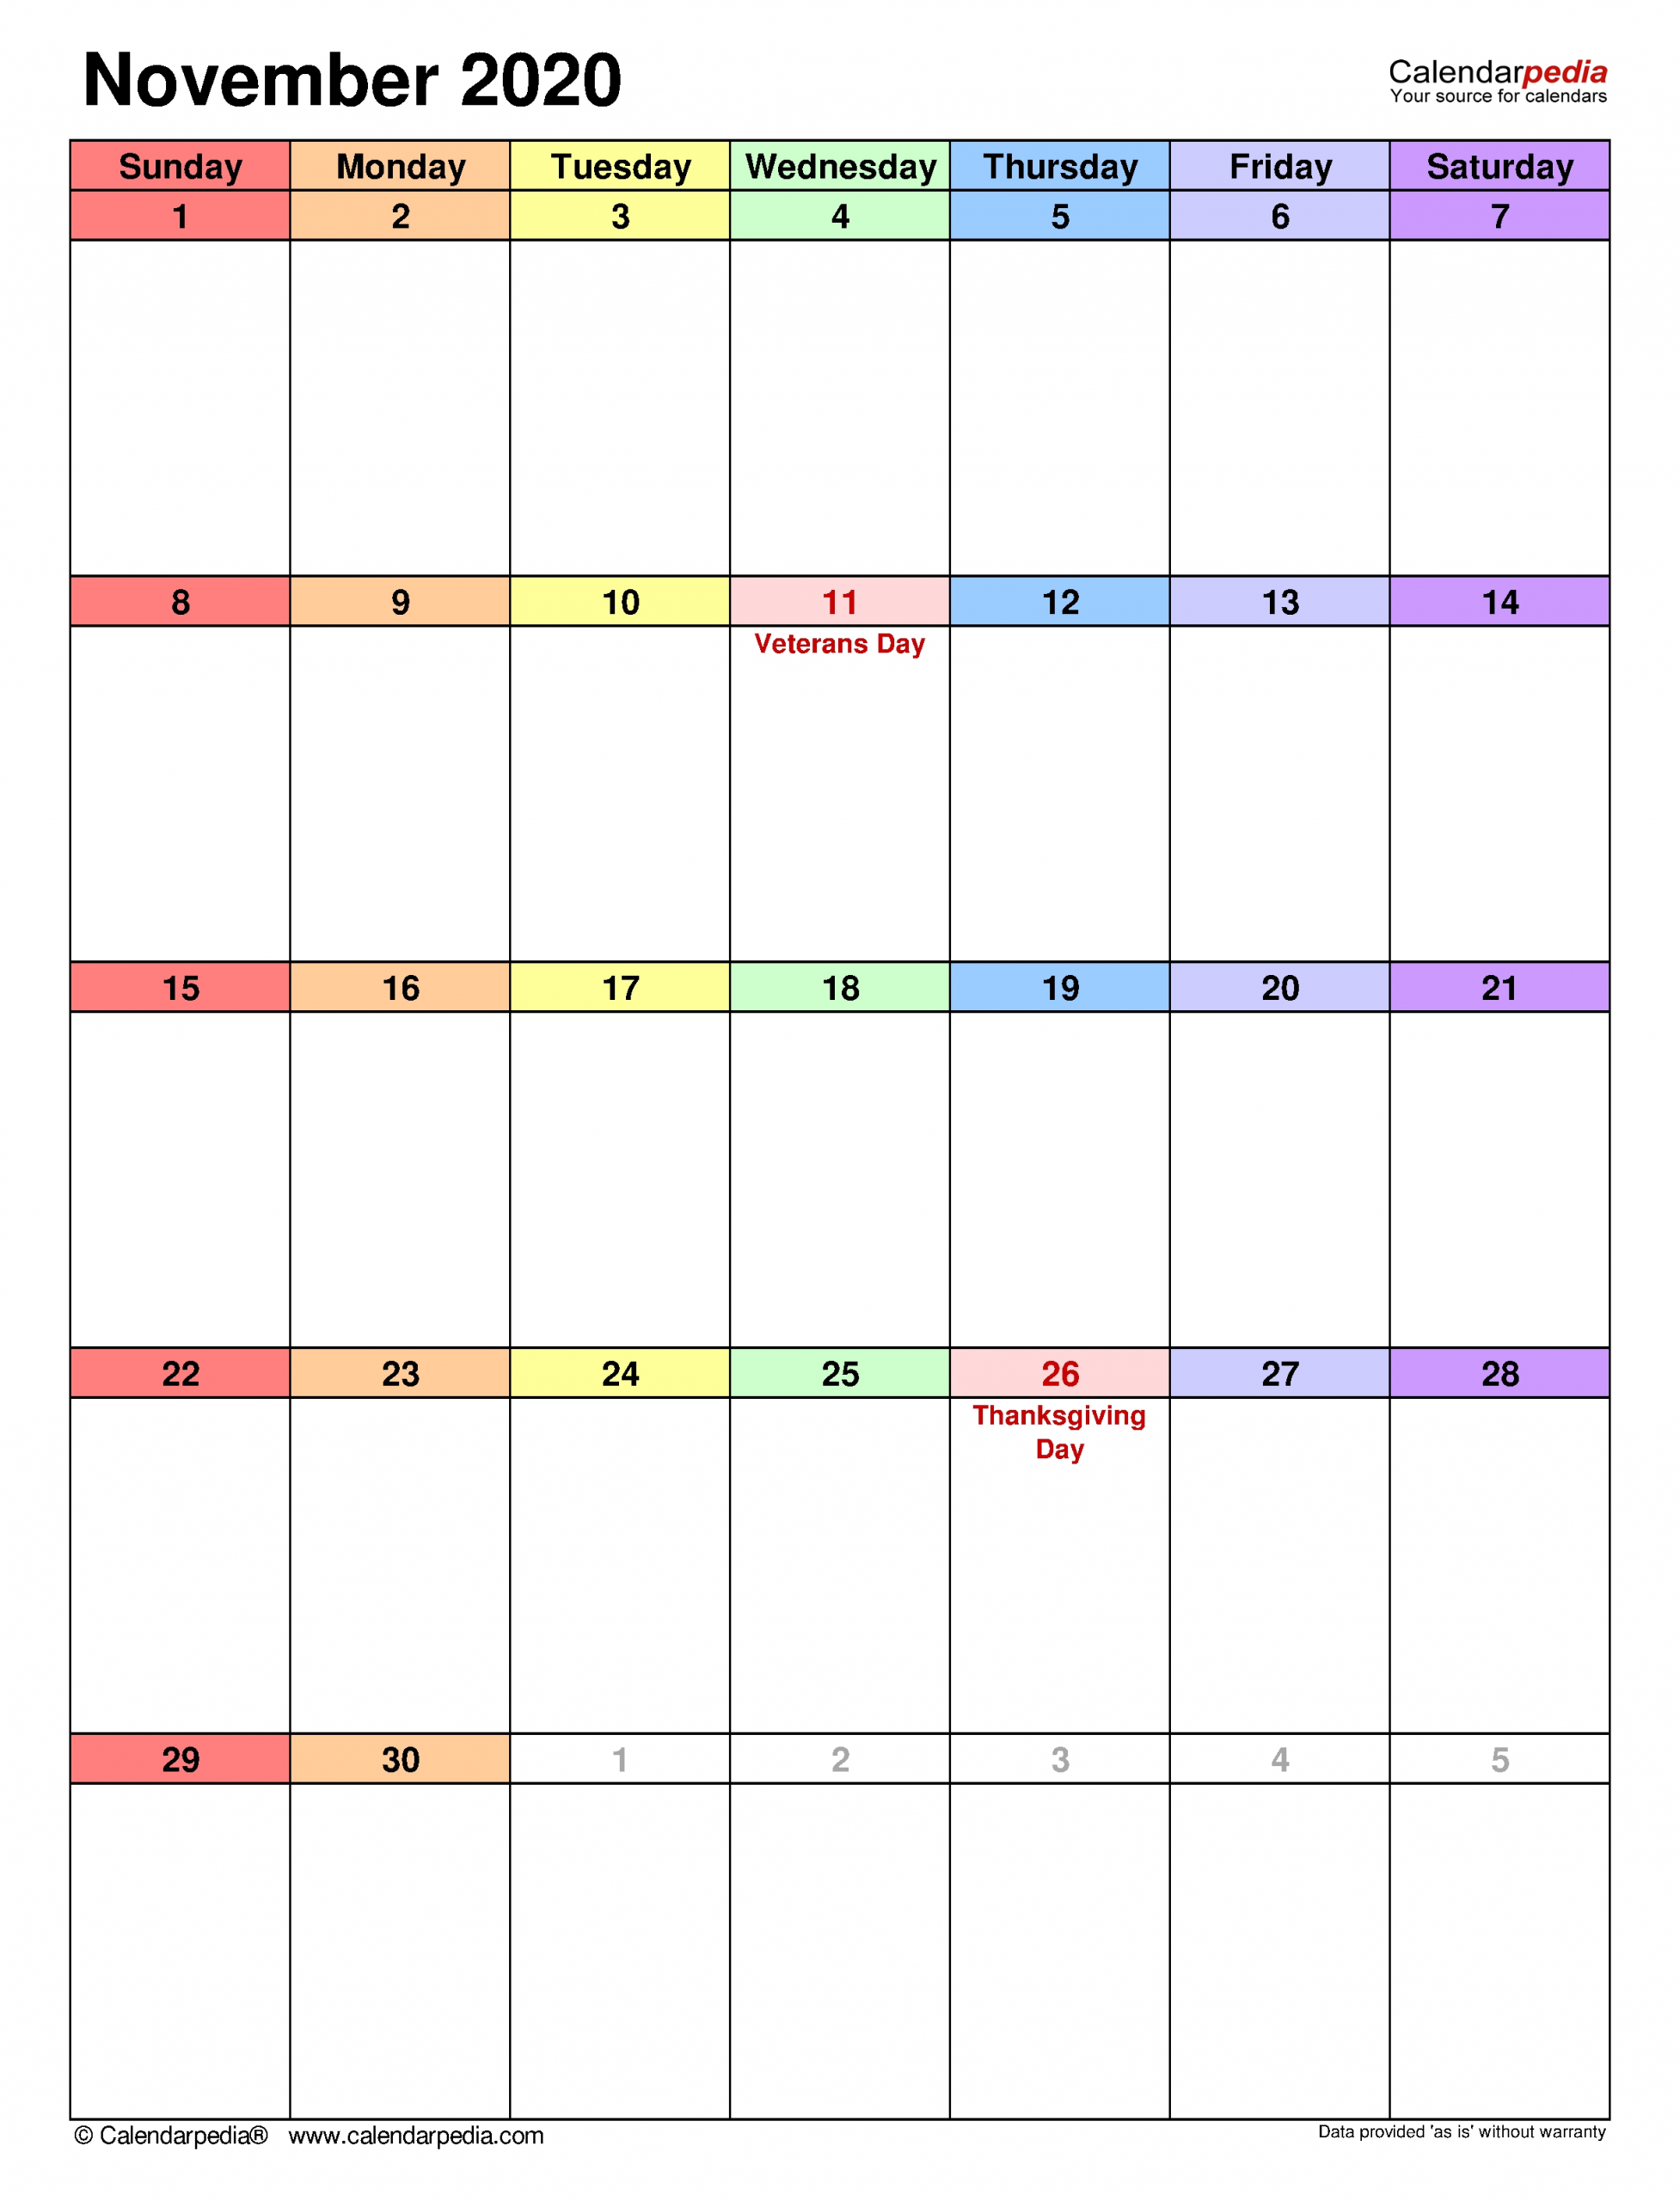 November 2020 Calendar | Templates For Word, Excel And Pdf with regard to Printable Chalander With Space To Right For 2020